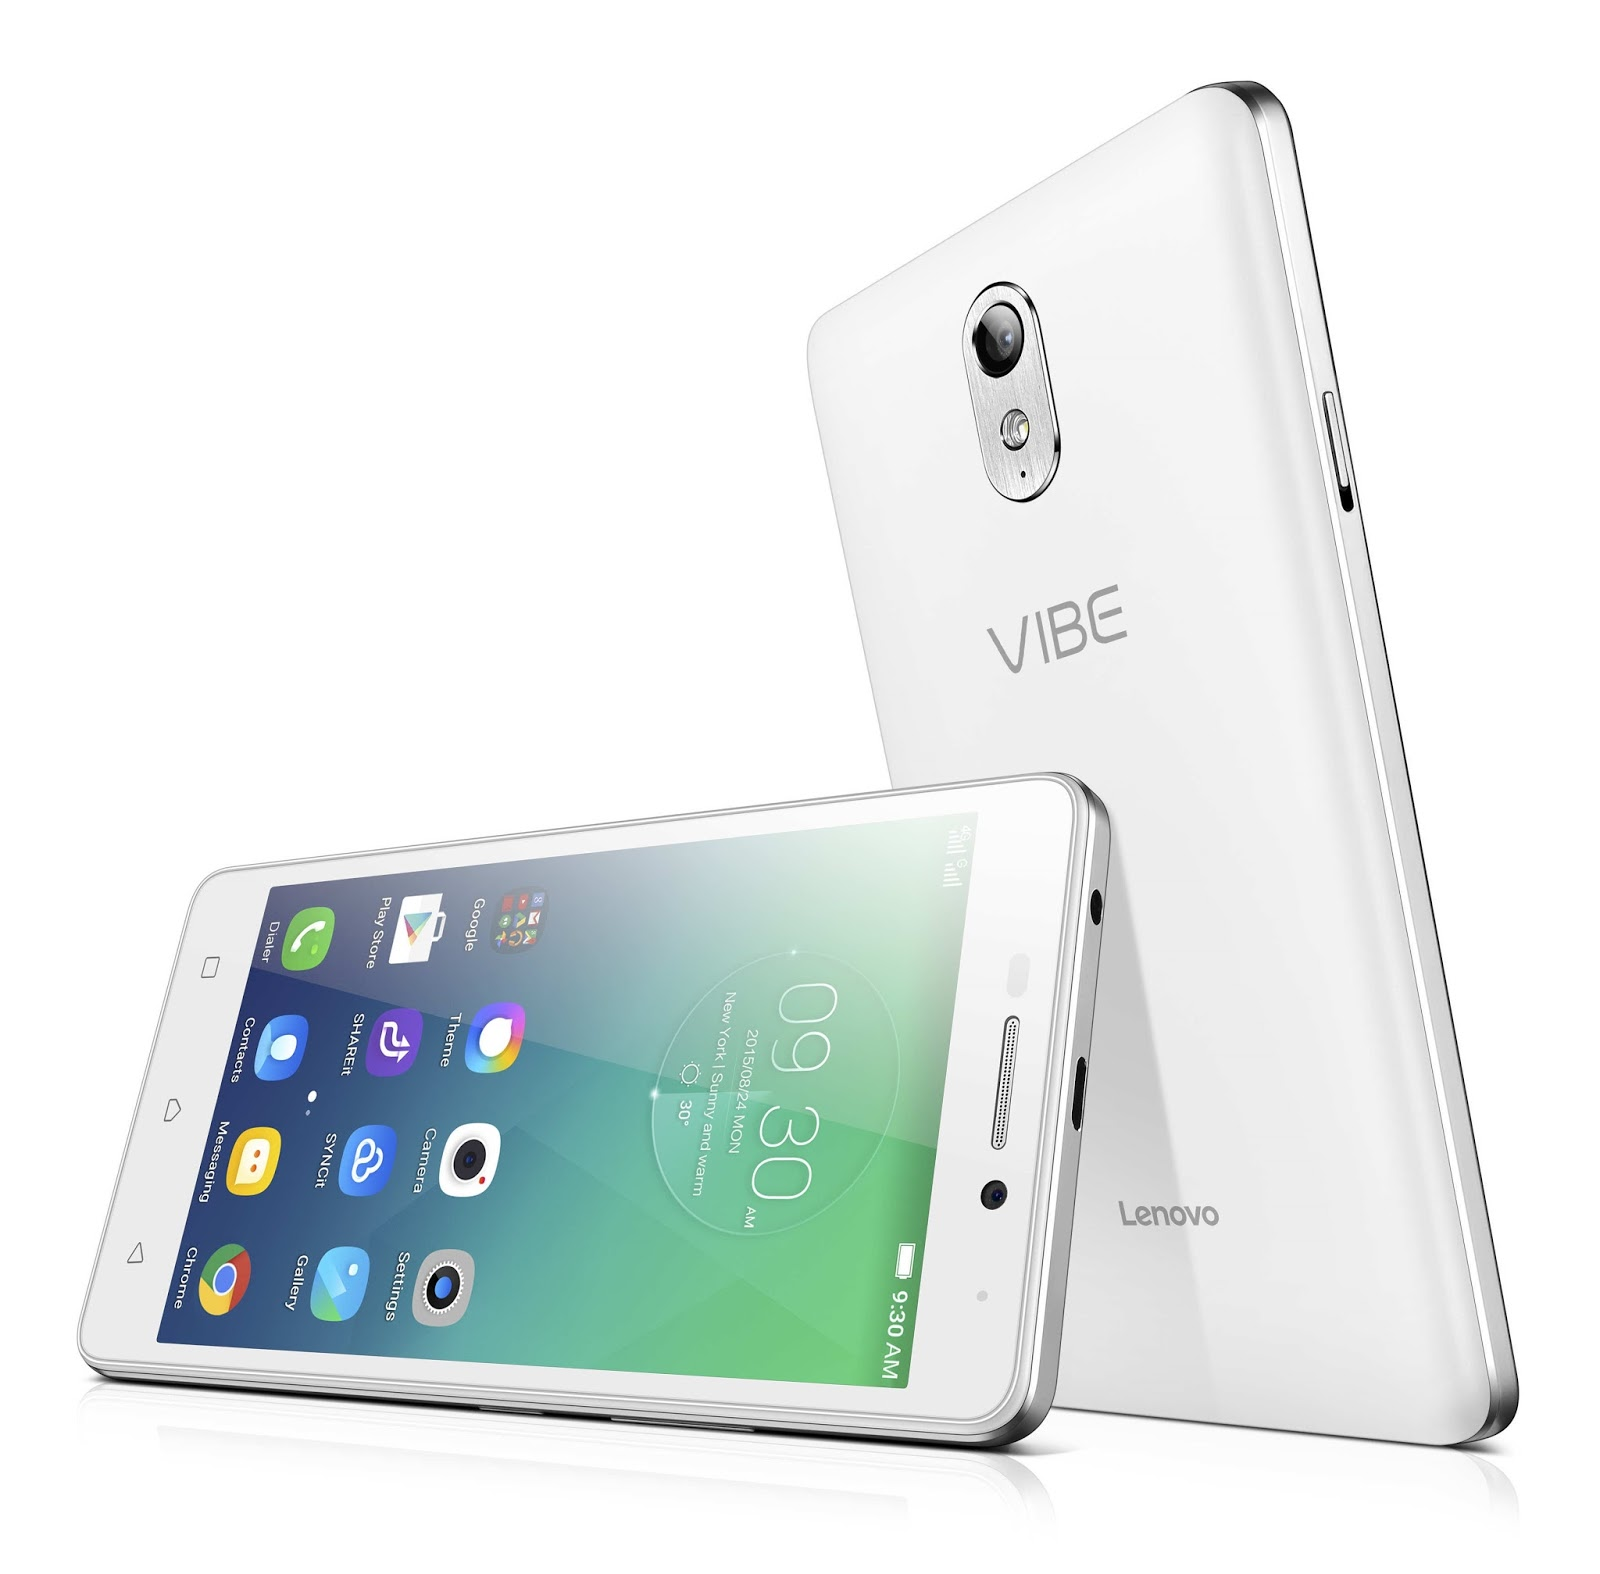 Lenovo VIBE P1m: Specs, Price and Availability